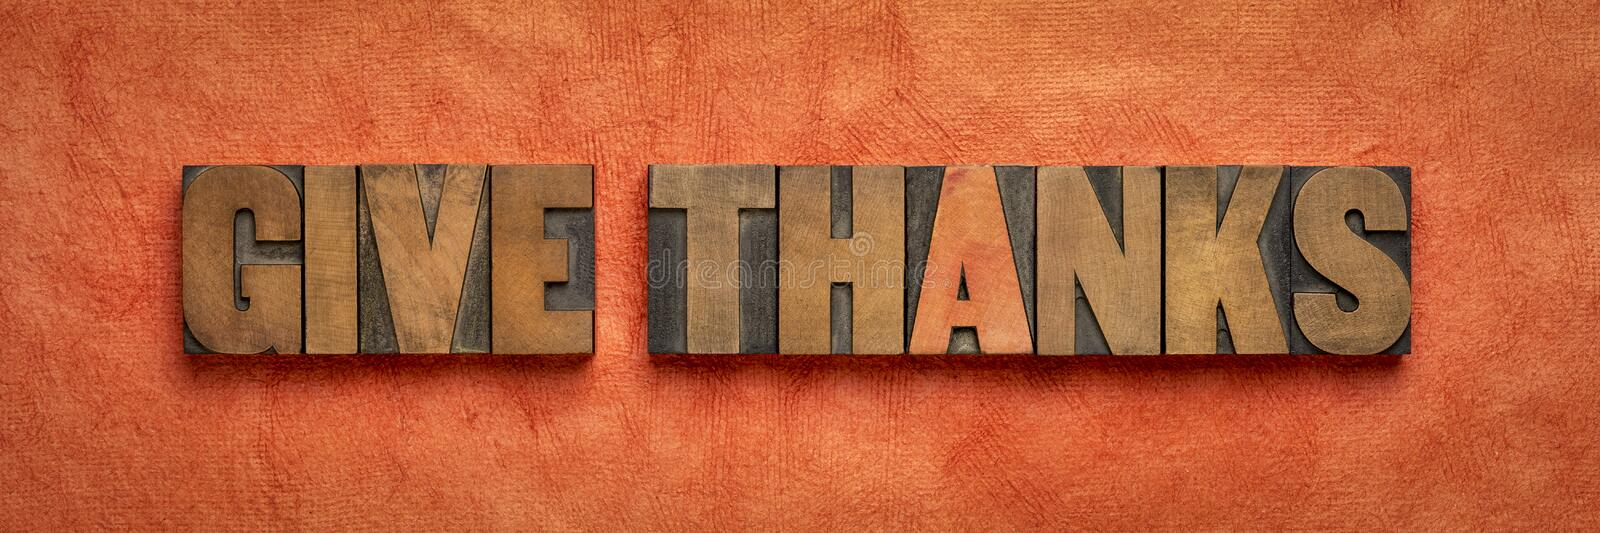 Give thanks - word abstract in wood type royalty free stock image